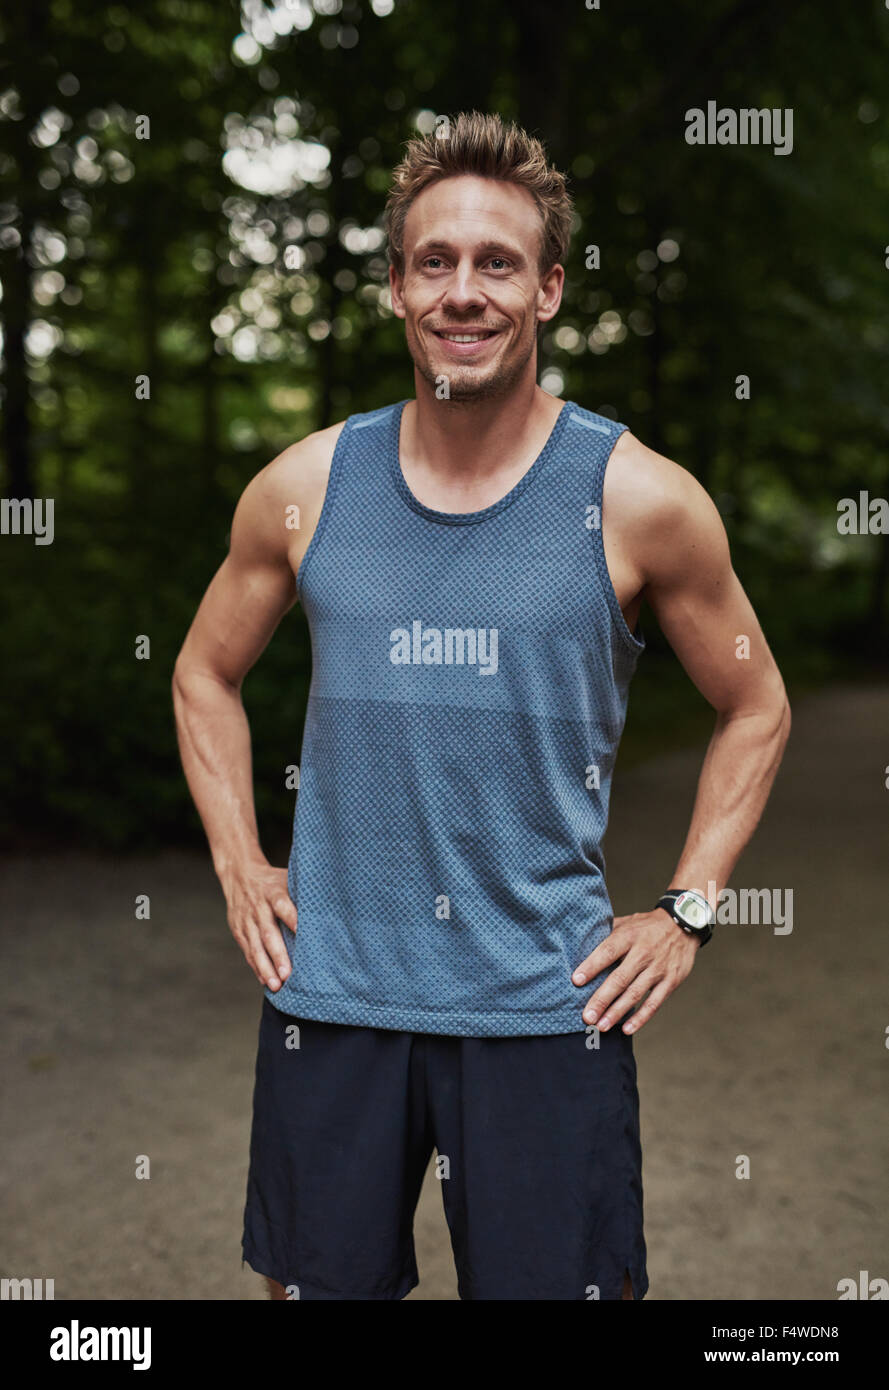 Smiling fit young man enjoying a healthy lifestyle standing outdoors in a park in his sportswear with his hands - Stock Image